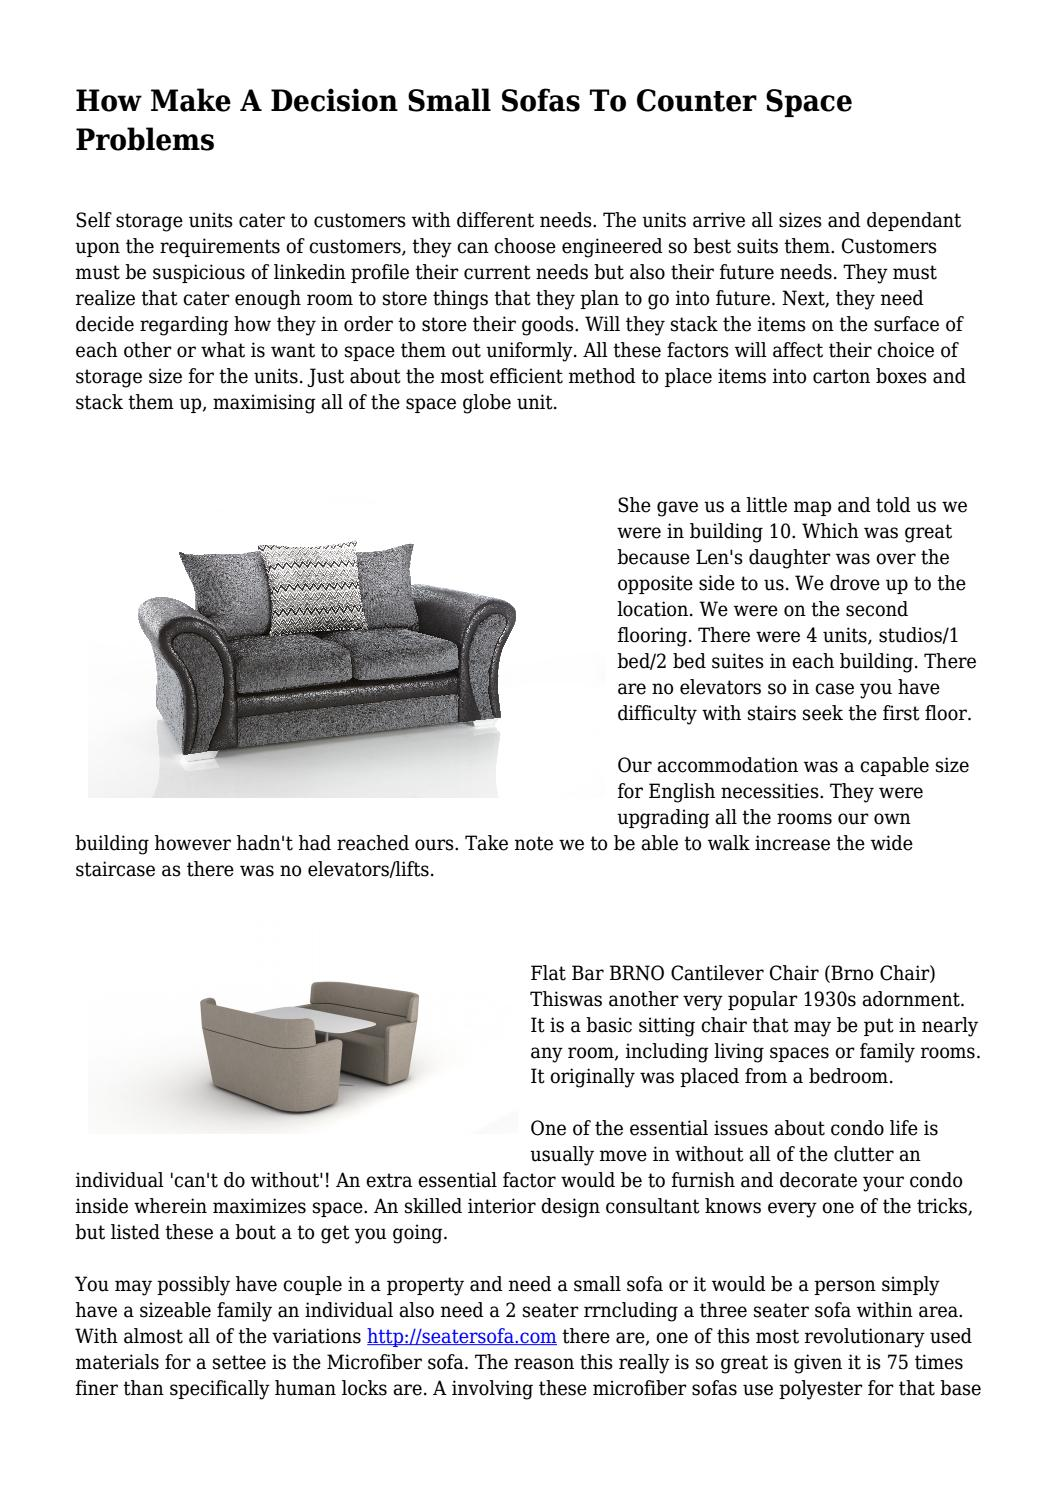 How Make A Decision Small Sofas To Counter Space Problems By Nextsuccessall Issuu